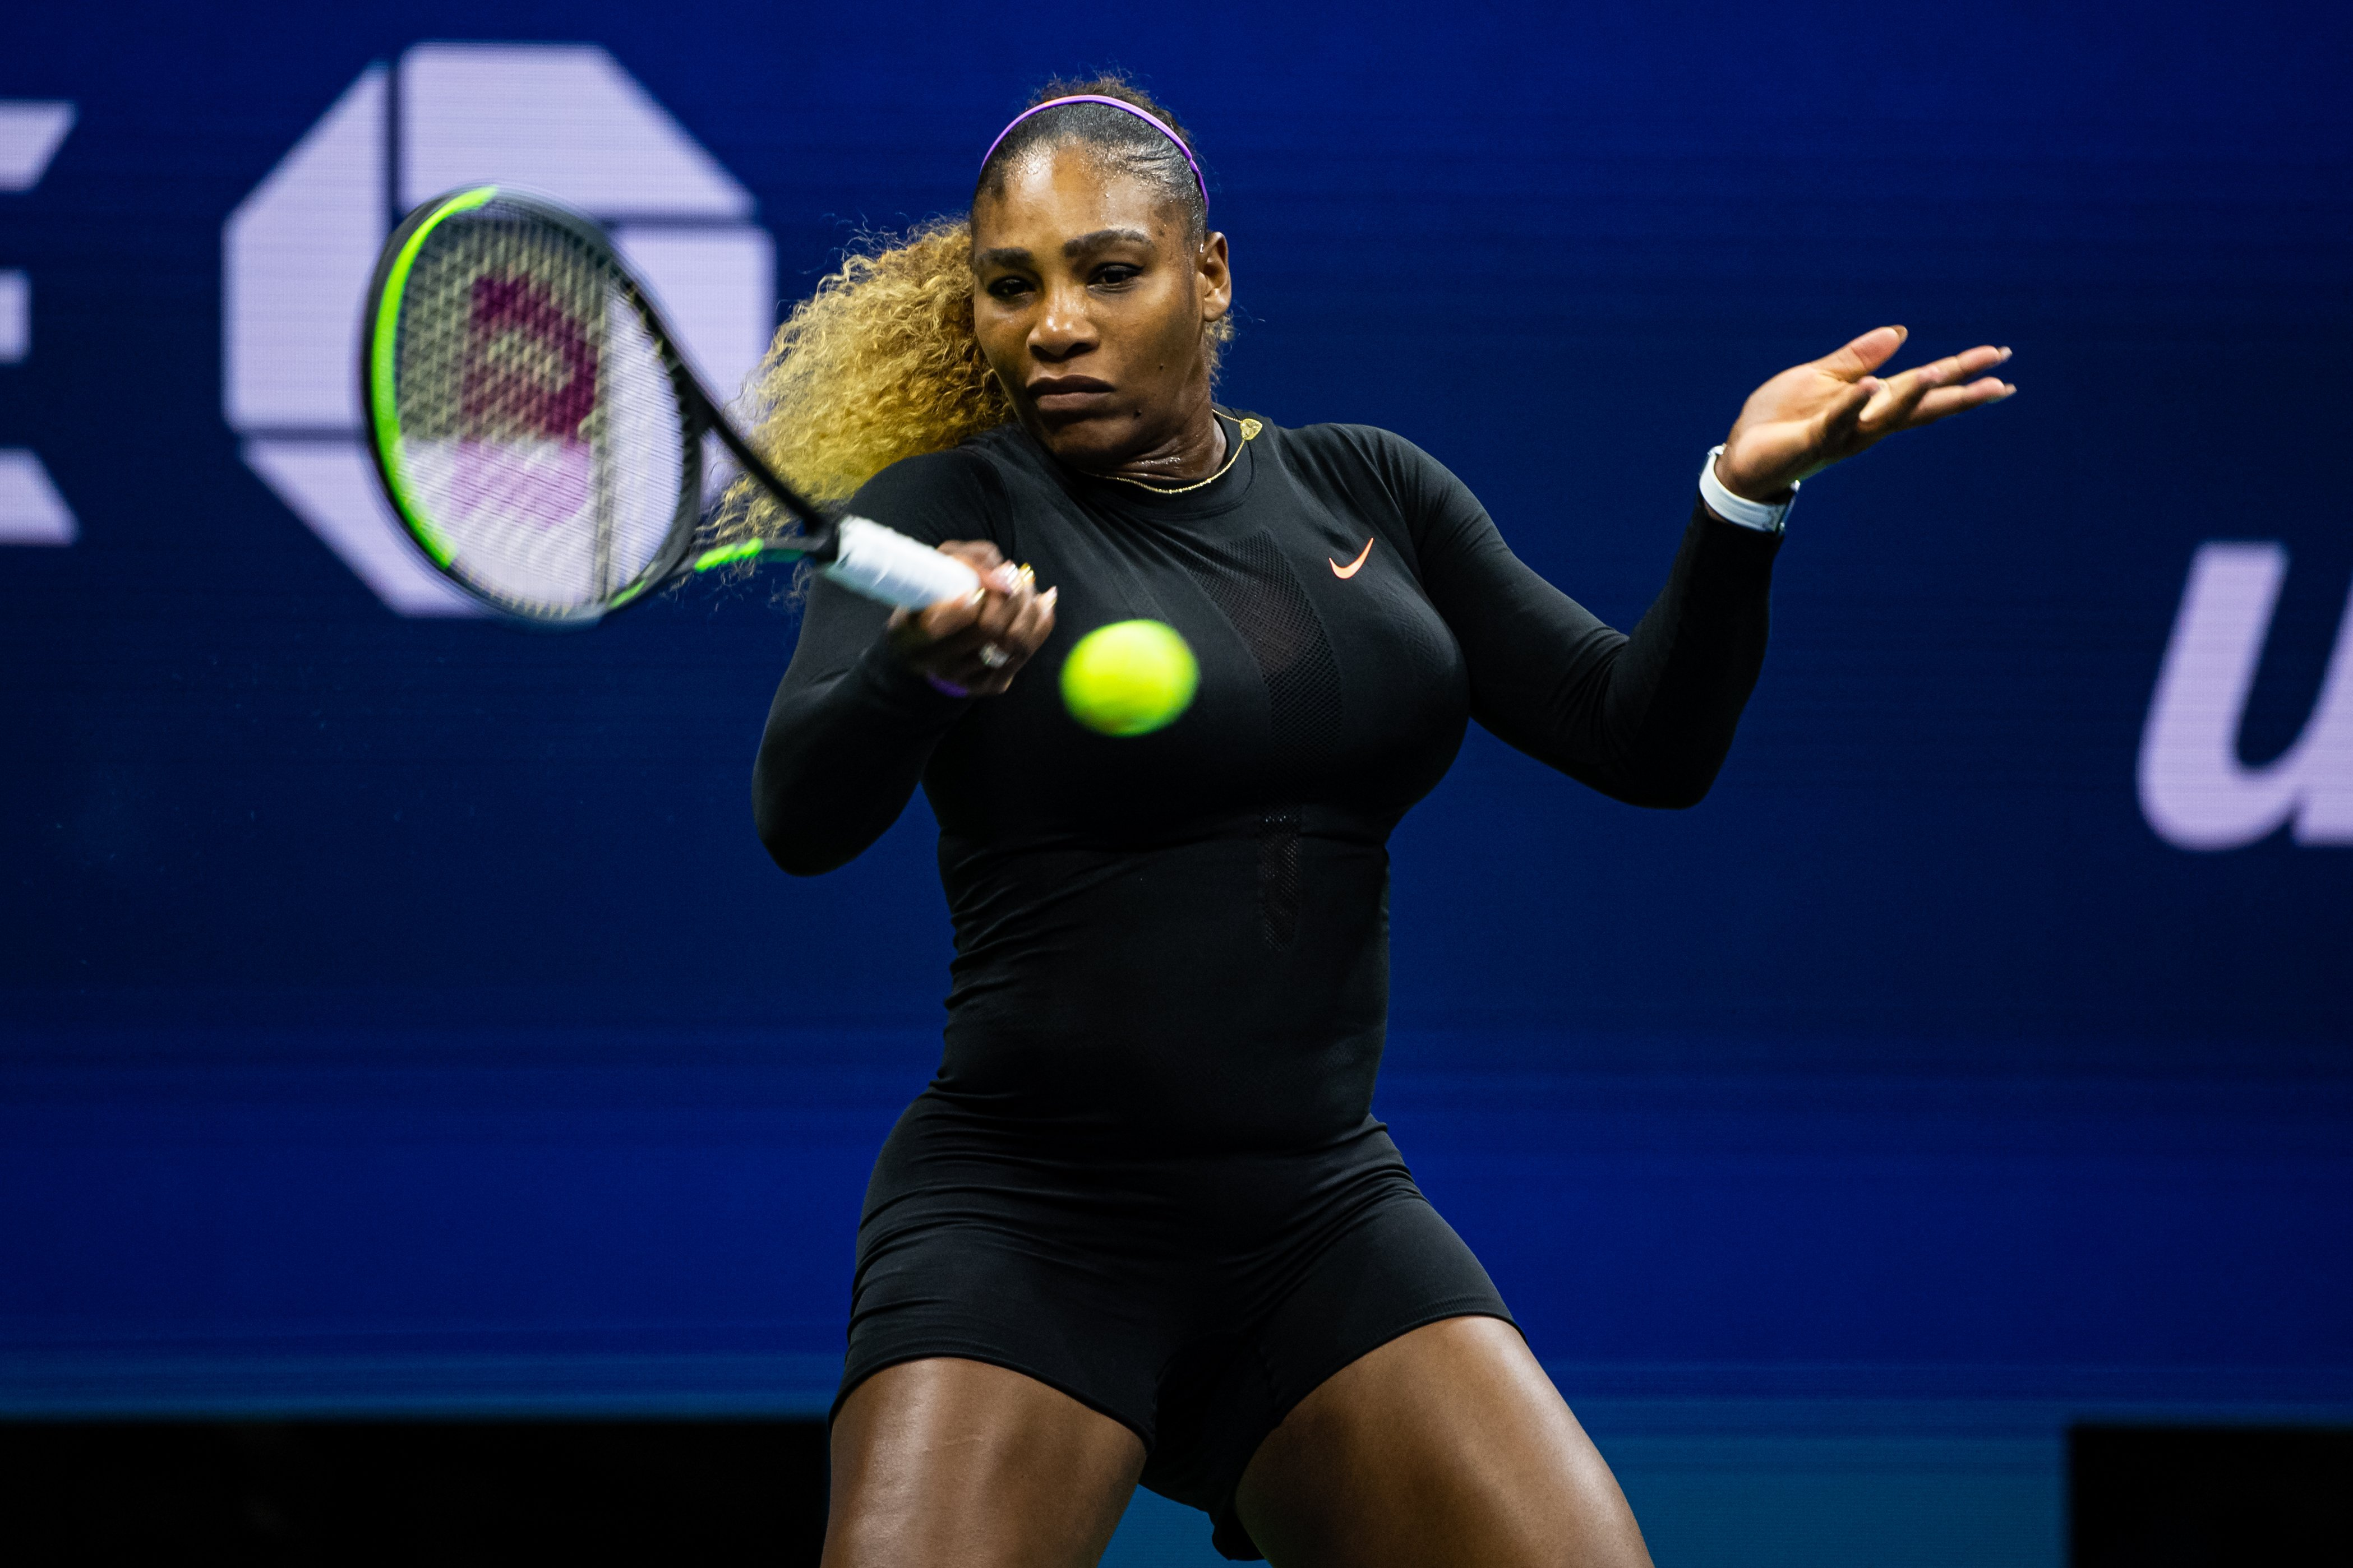 Serena Williams playing against Maria Sharapova in the first round of the US Open on Aug. 26, 2019 in New York City | Photo: Getty Images